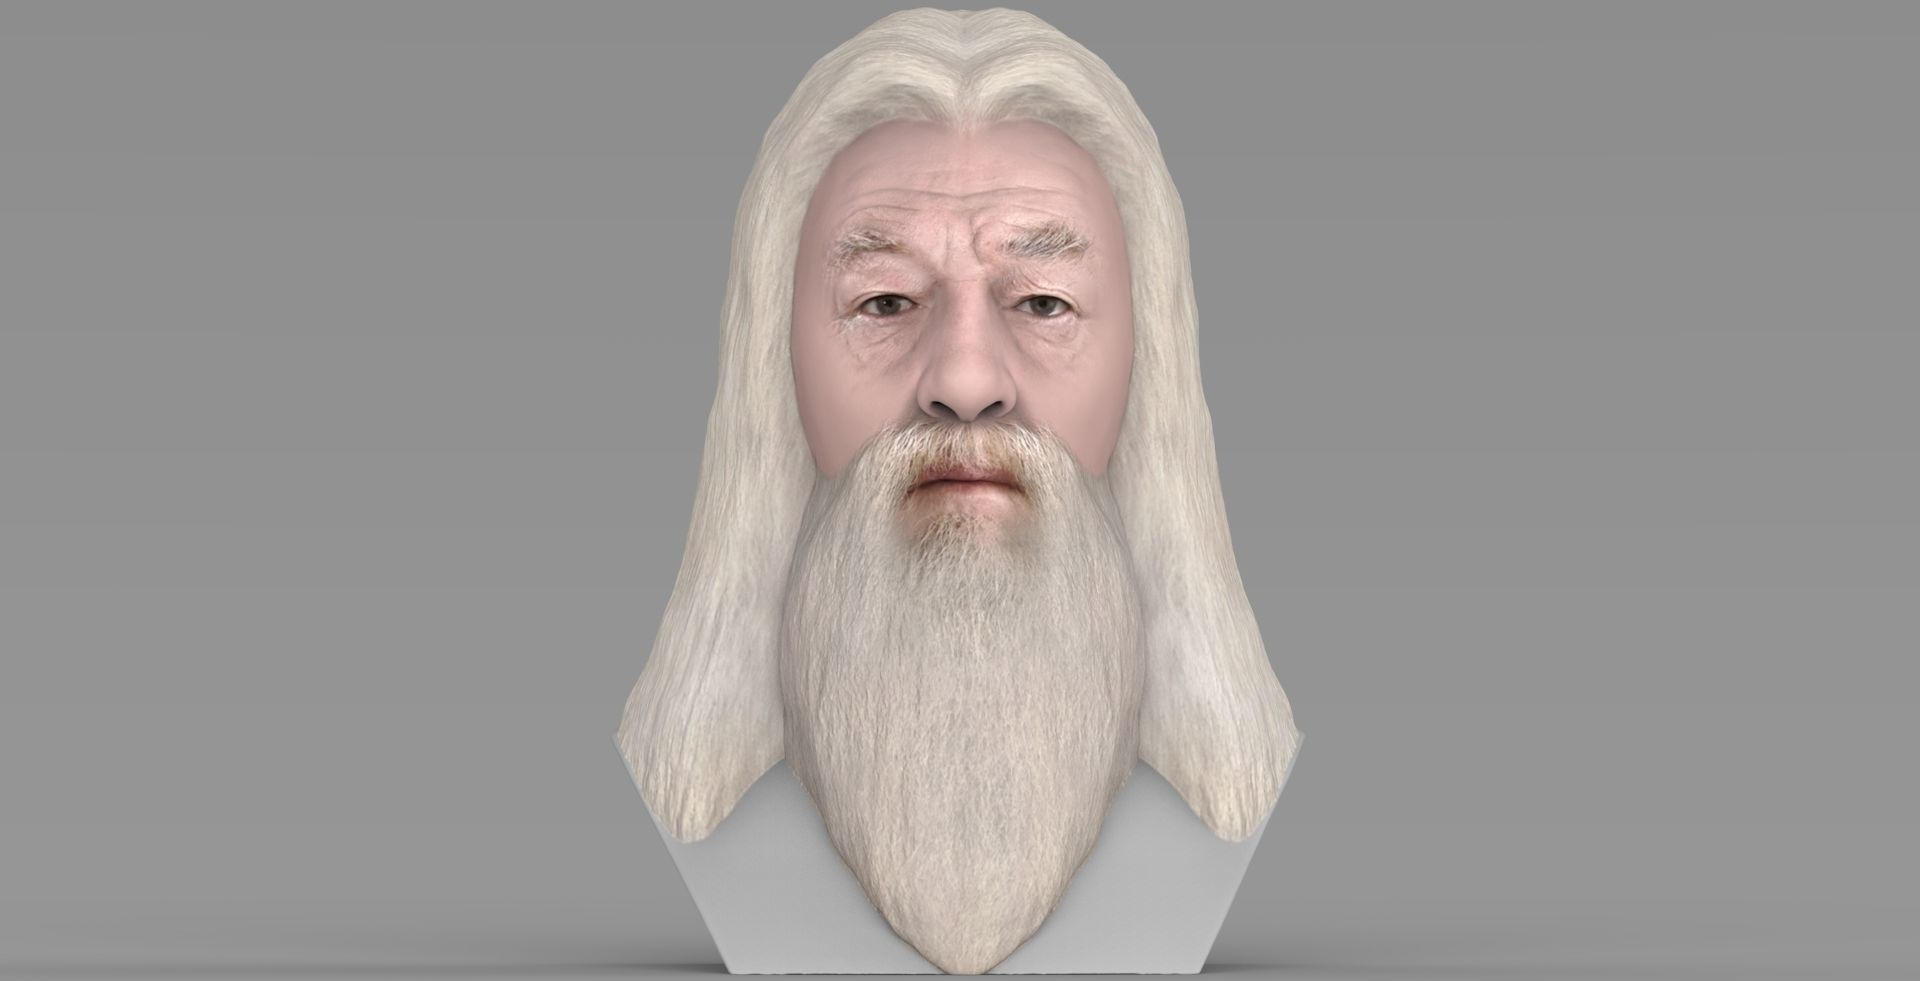 Dumbledore from Harry Potter bust for full color 3D printing